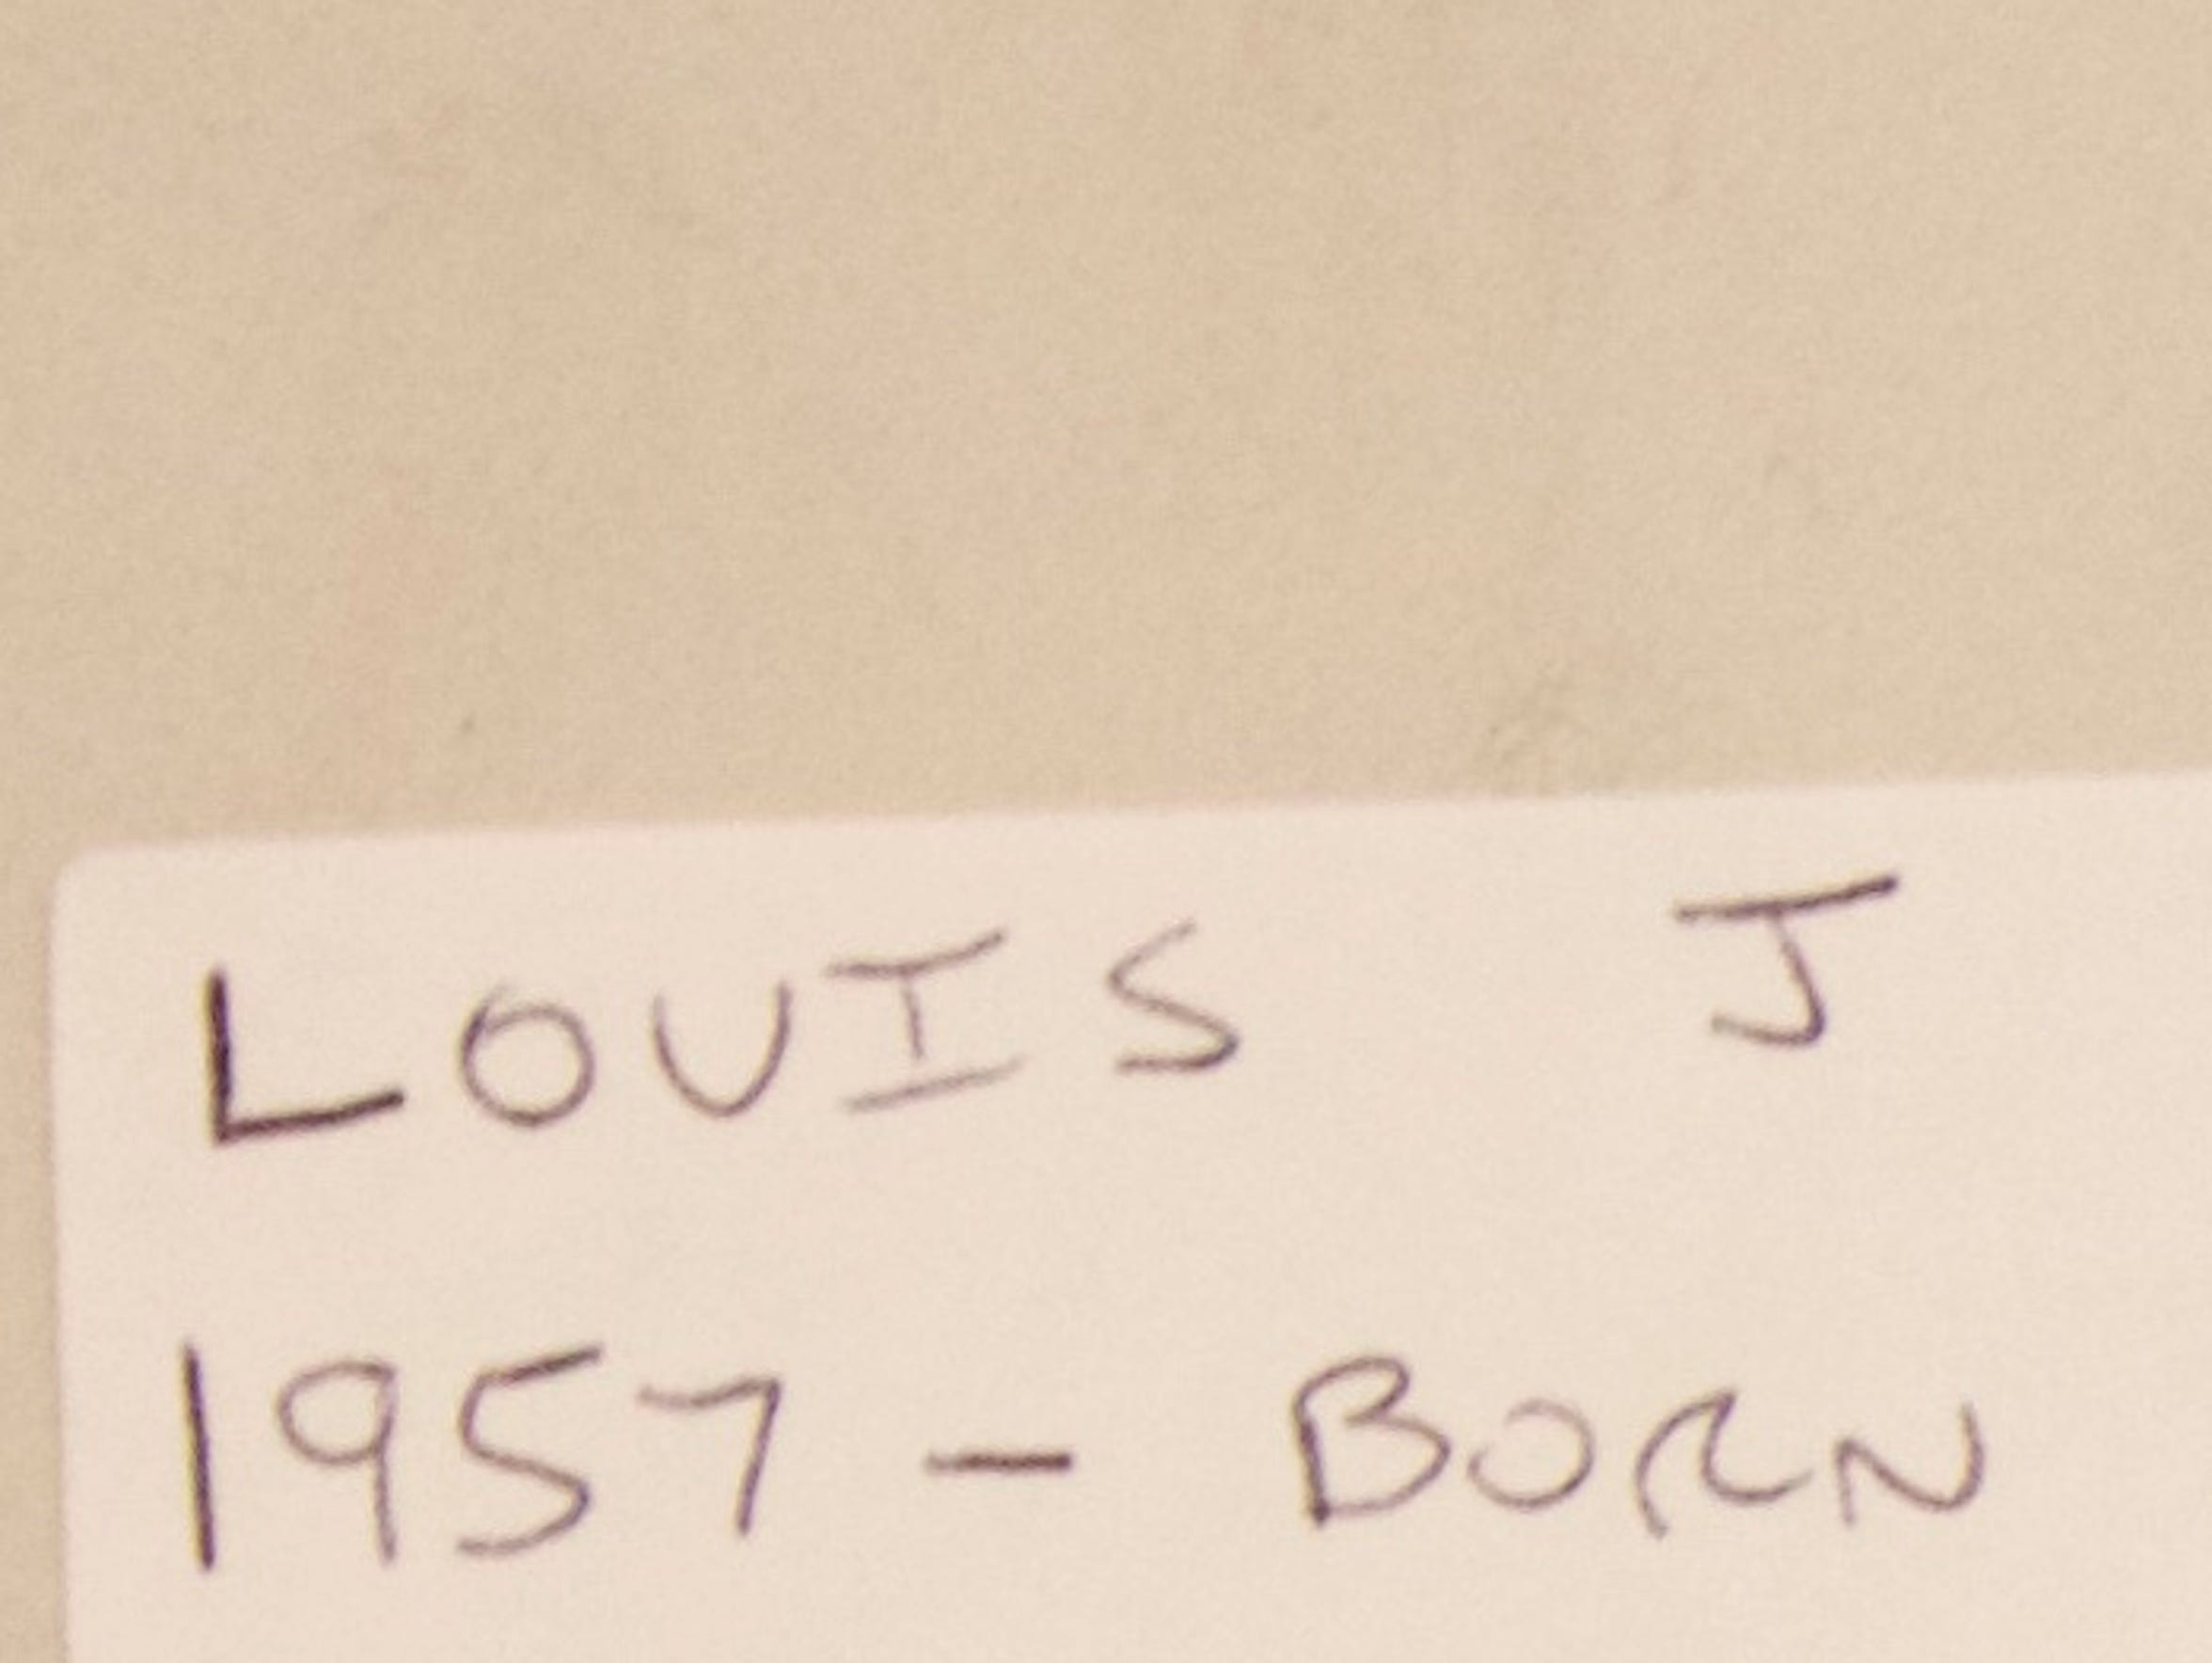 A letter from Louis Spina shows his birth date